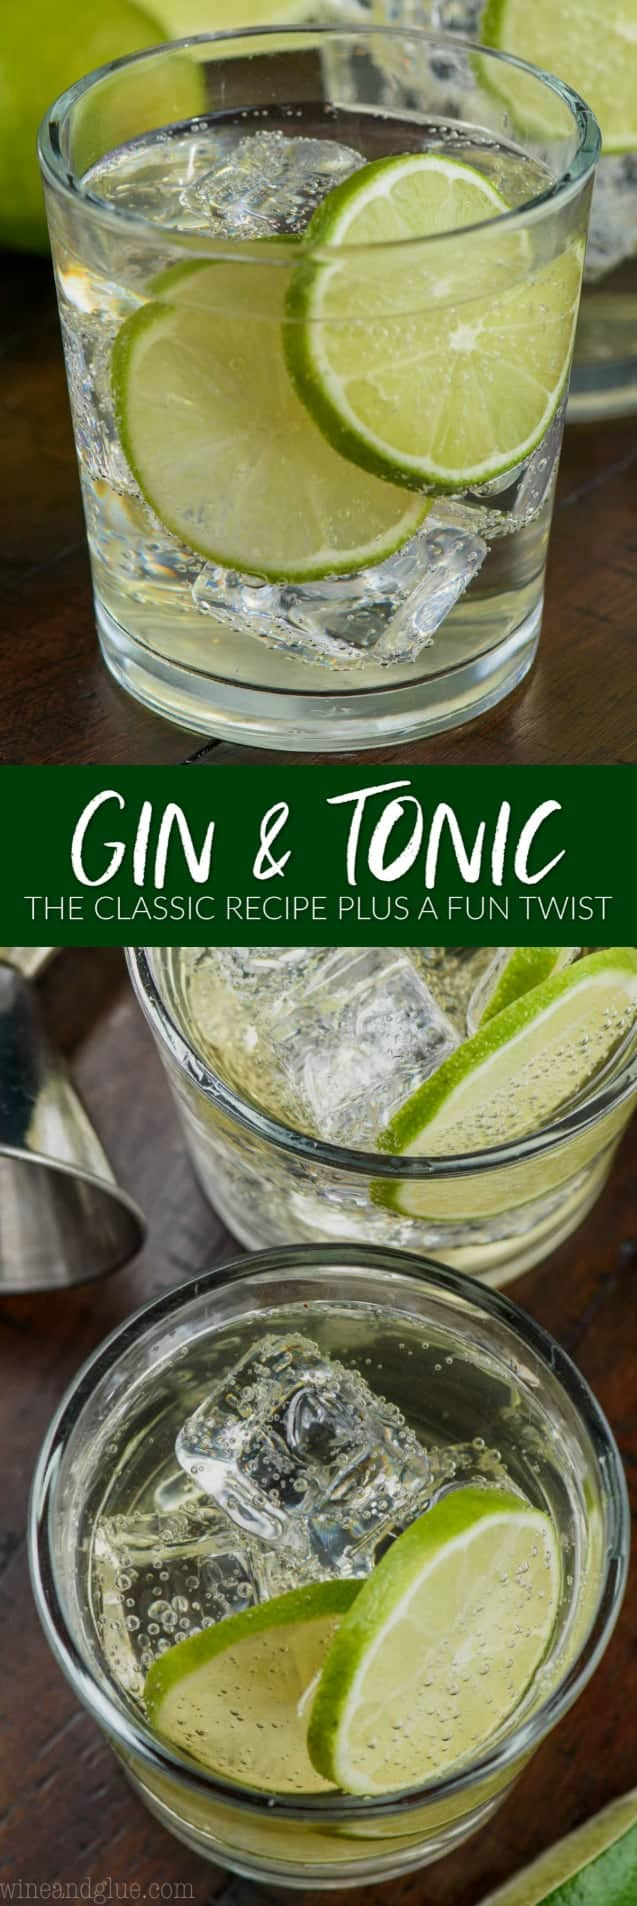 collage of photos of gin and tonic recipe